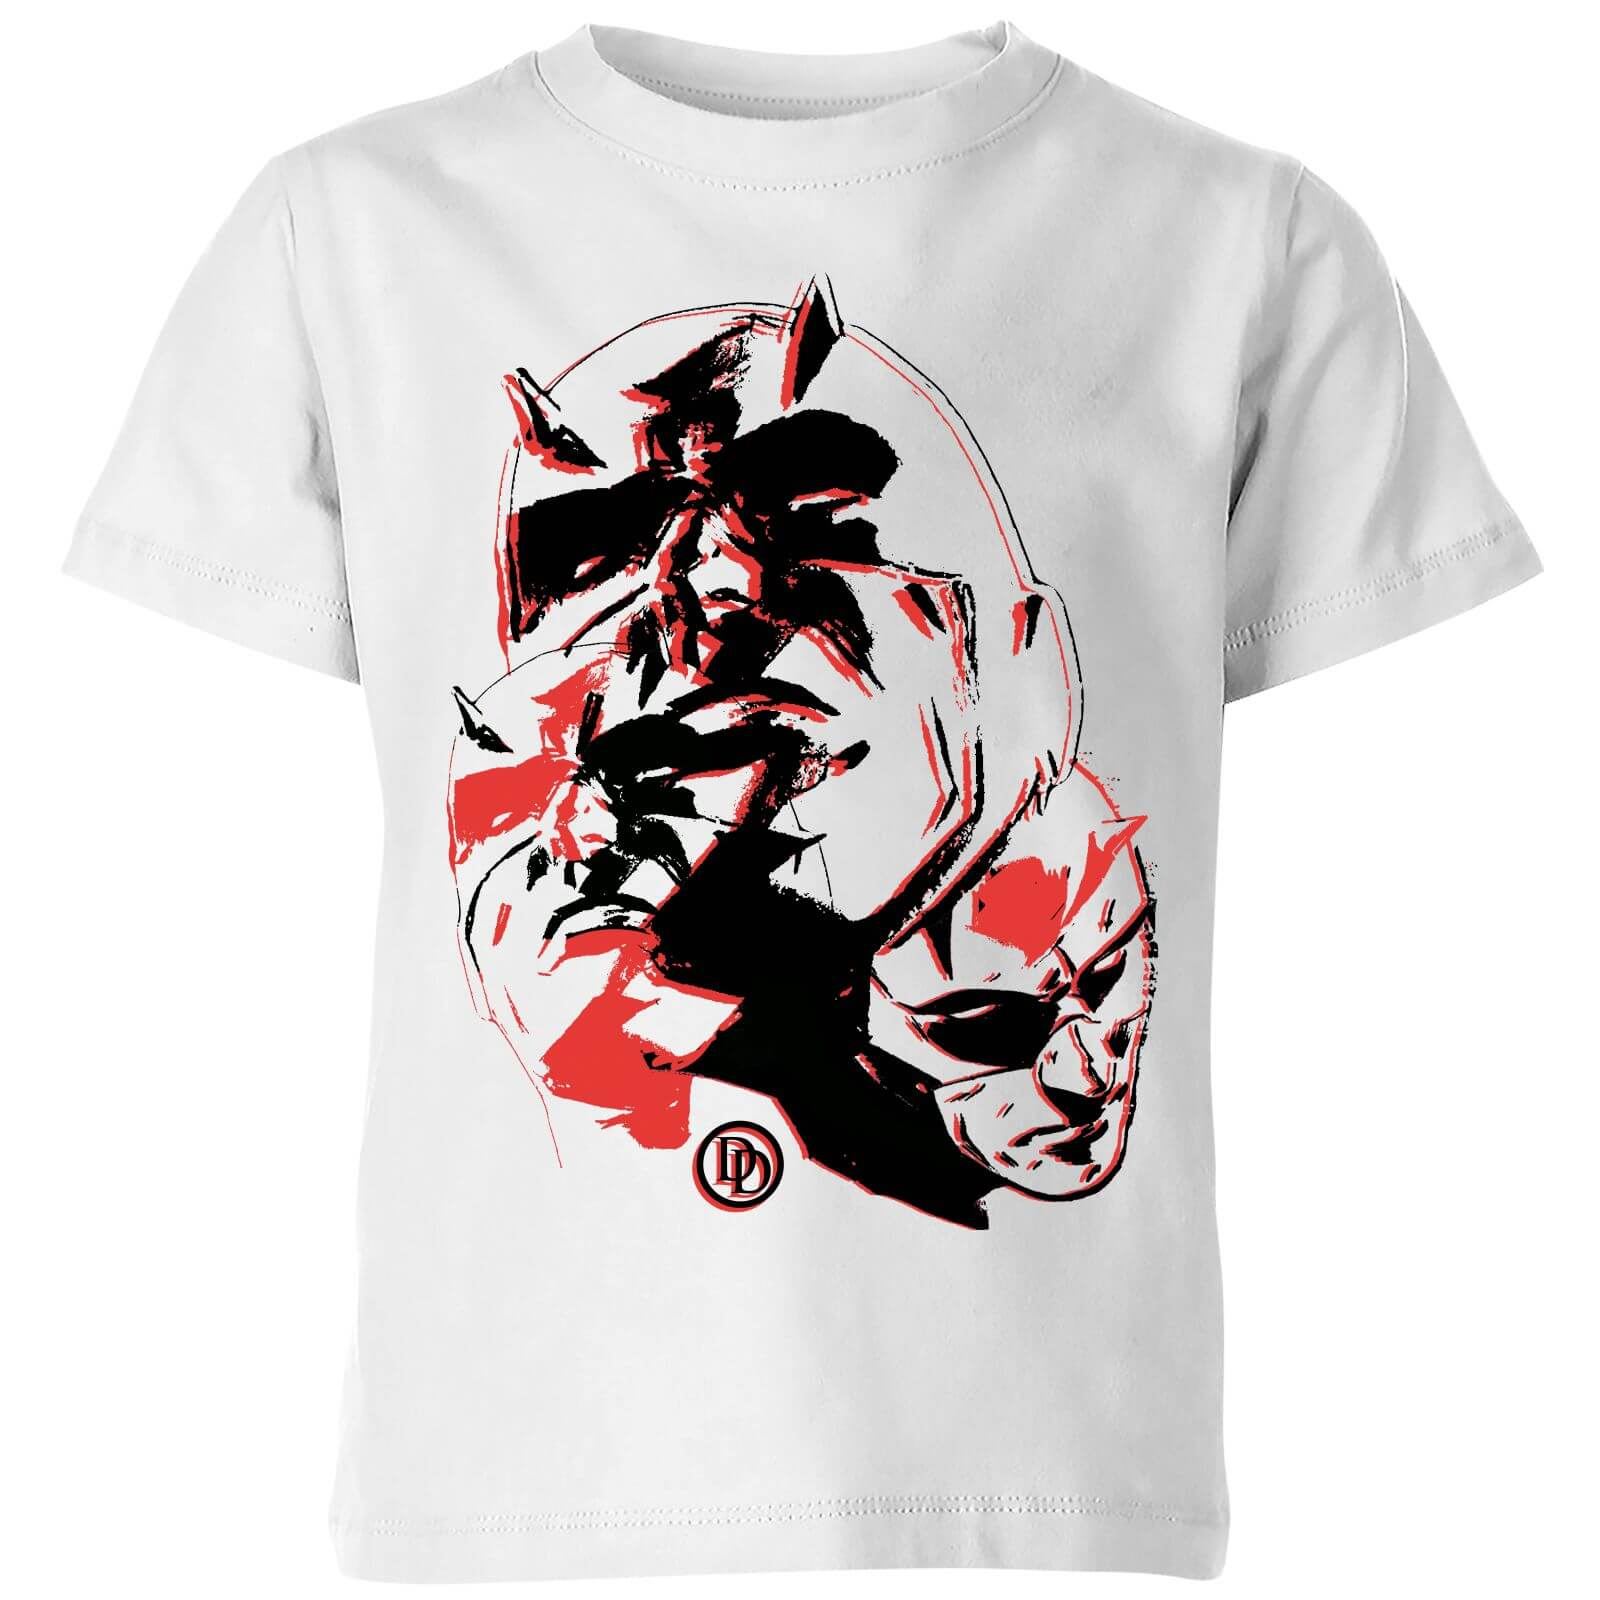 OfferteWeb.click 87-t-shirt-marvel-knights-daredevil-layered-faces-bianco